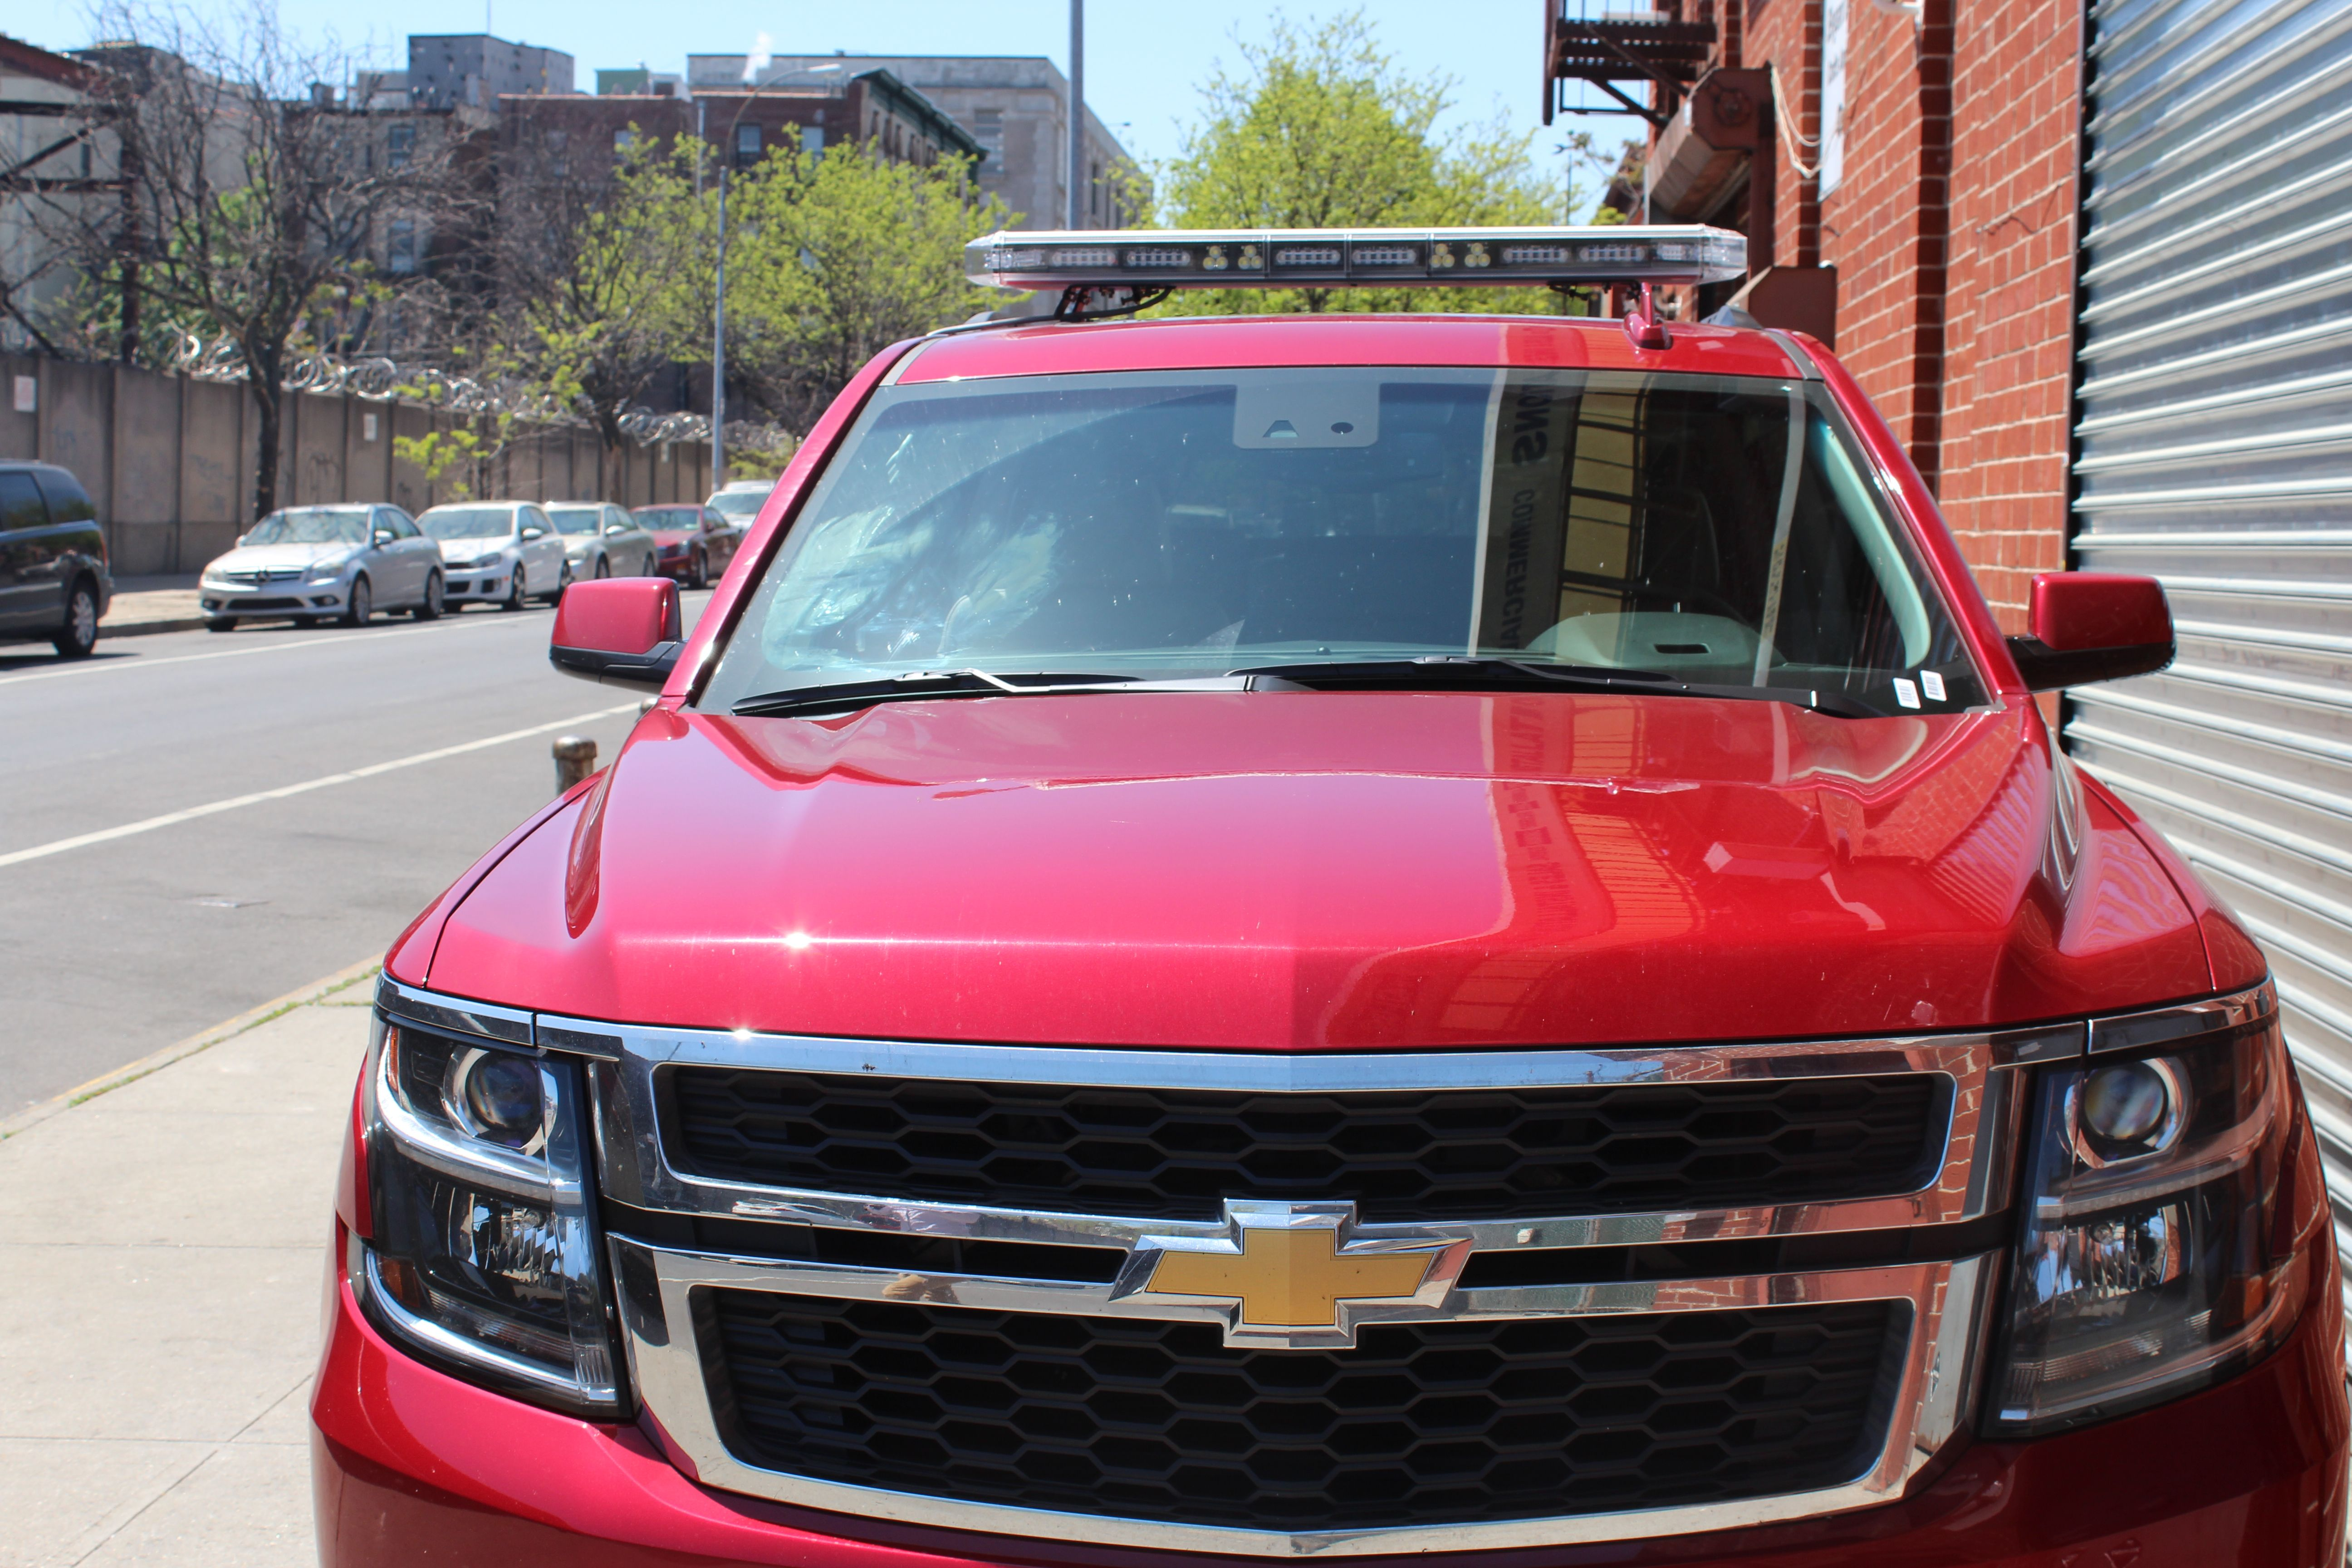 Whacker challenger 50 led full size light bar ambulance brand new 2015 chevrolet suburban with a whacker challenger 50 led full size light bar aloadofball Gallery